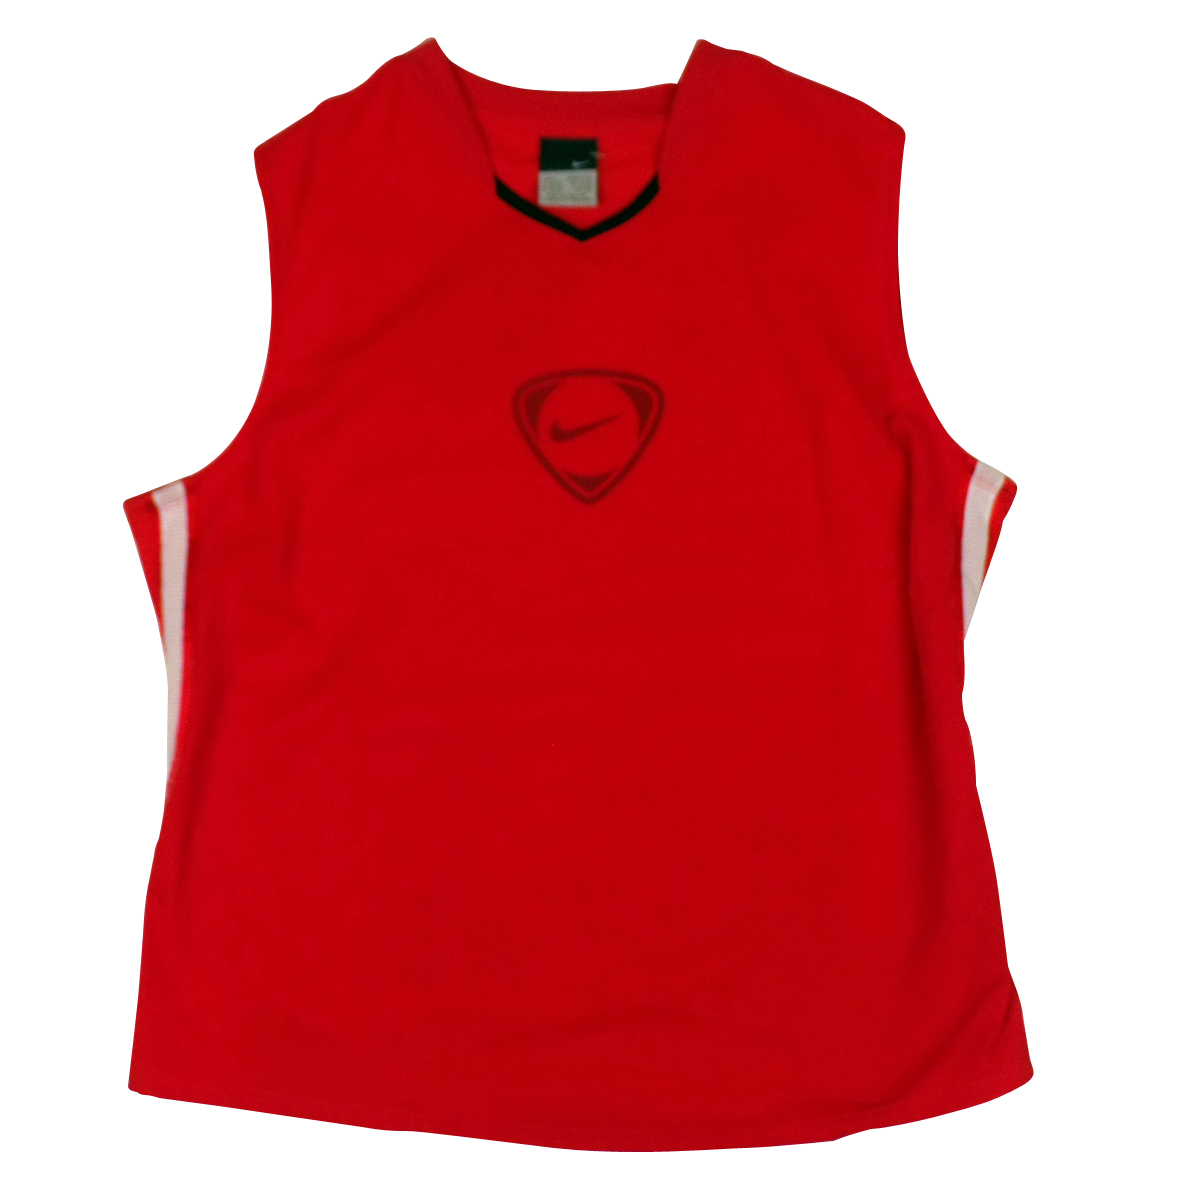 womens nike dry dri fit running shirt vest top tee ladies